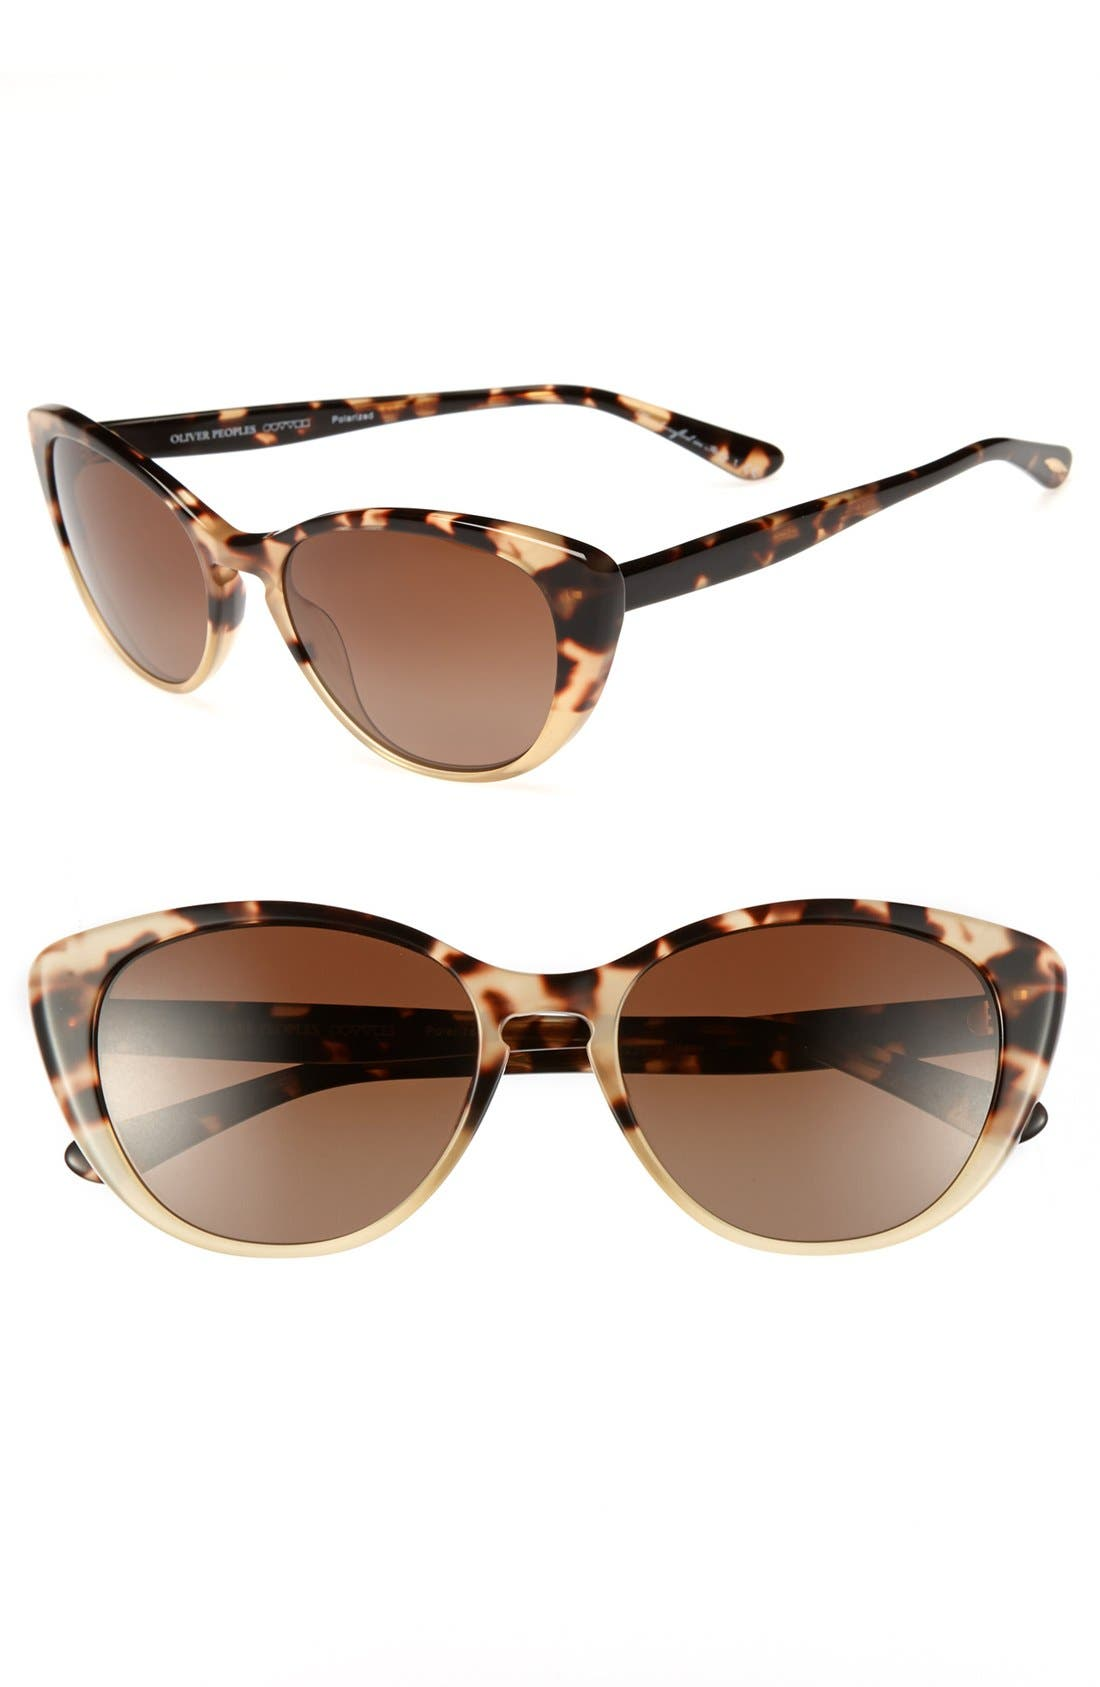 Alternate Image 1 Selected - Oliver Peoples 'Haley' 55mm Polarized Sunglasses